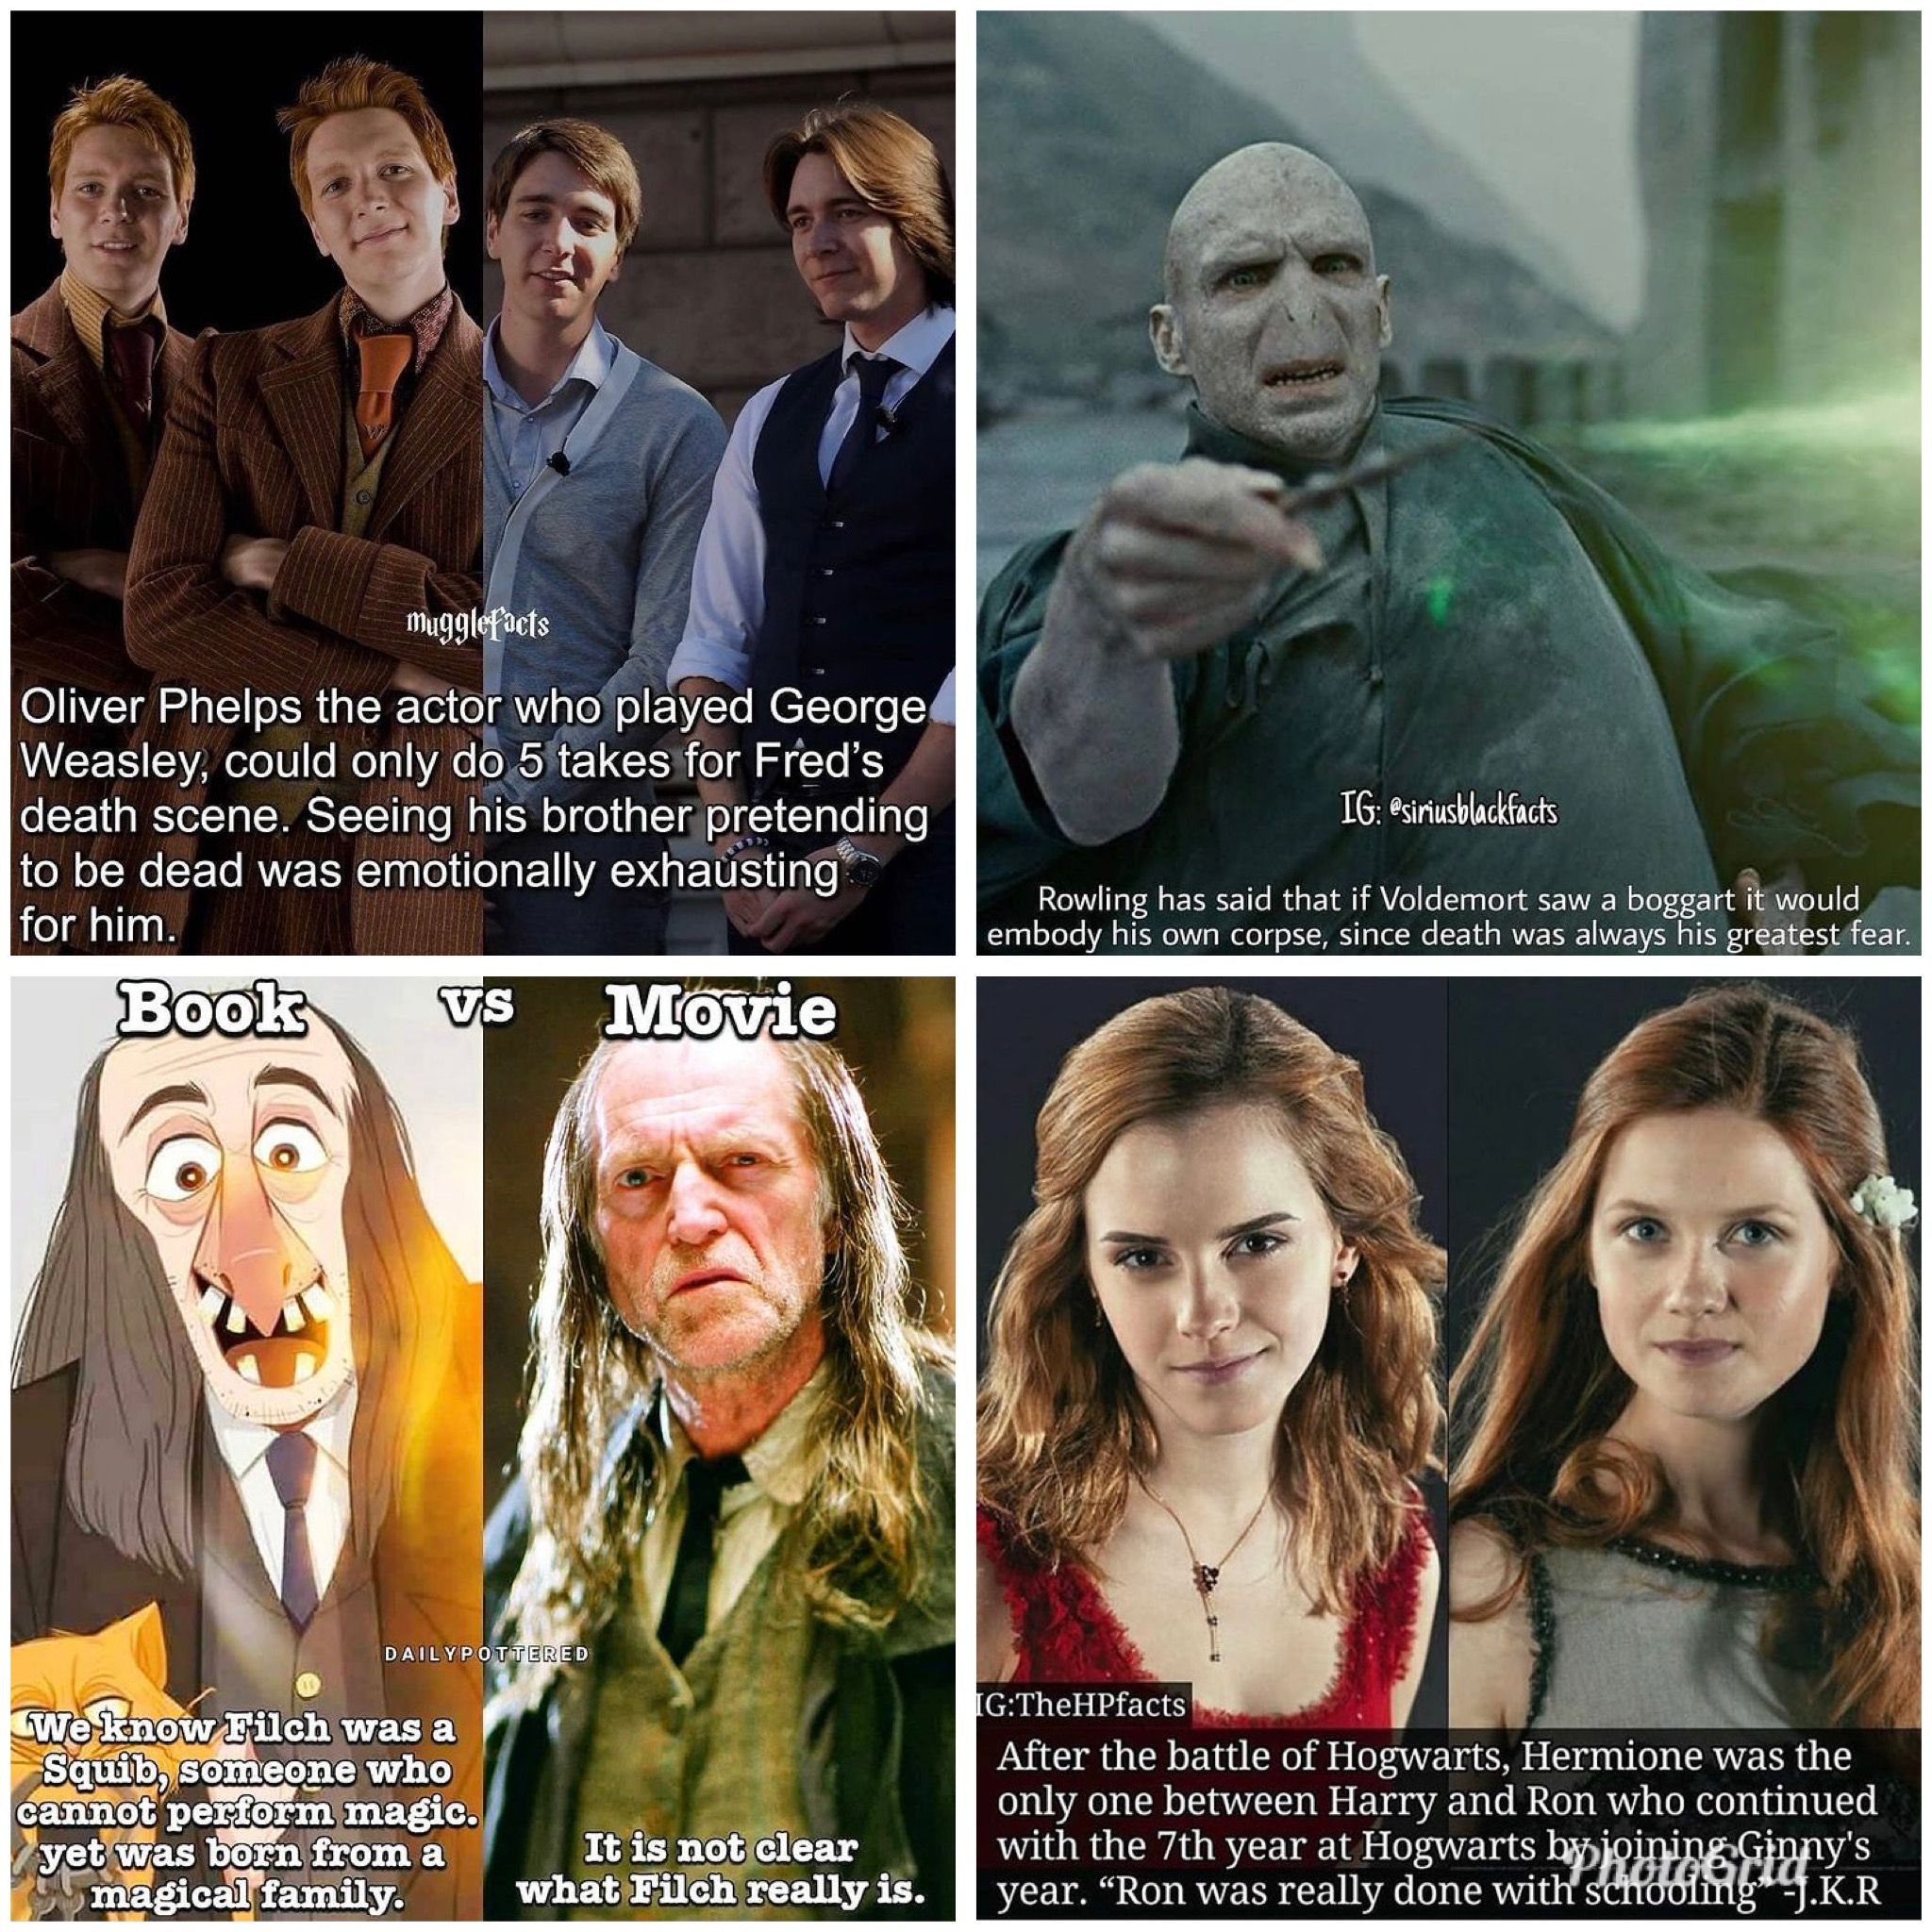 Pin By Marla Montville On Beloved Harry Potter Actors And Actress In 2021 George Weasley Oliver Phelps Harry Potter Actors